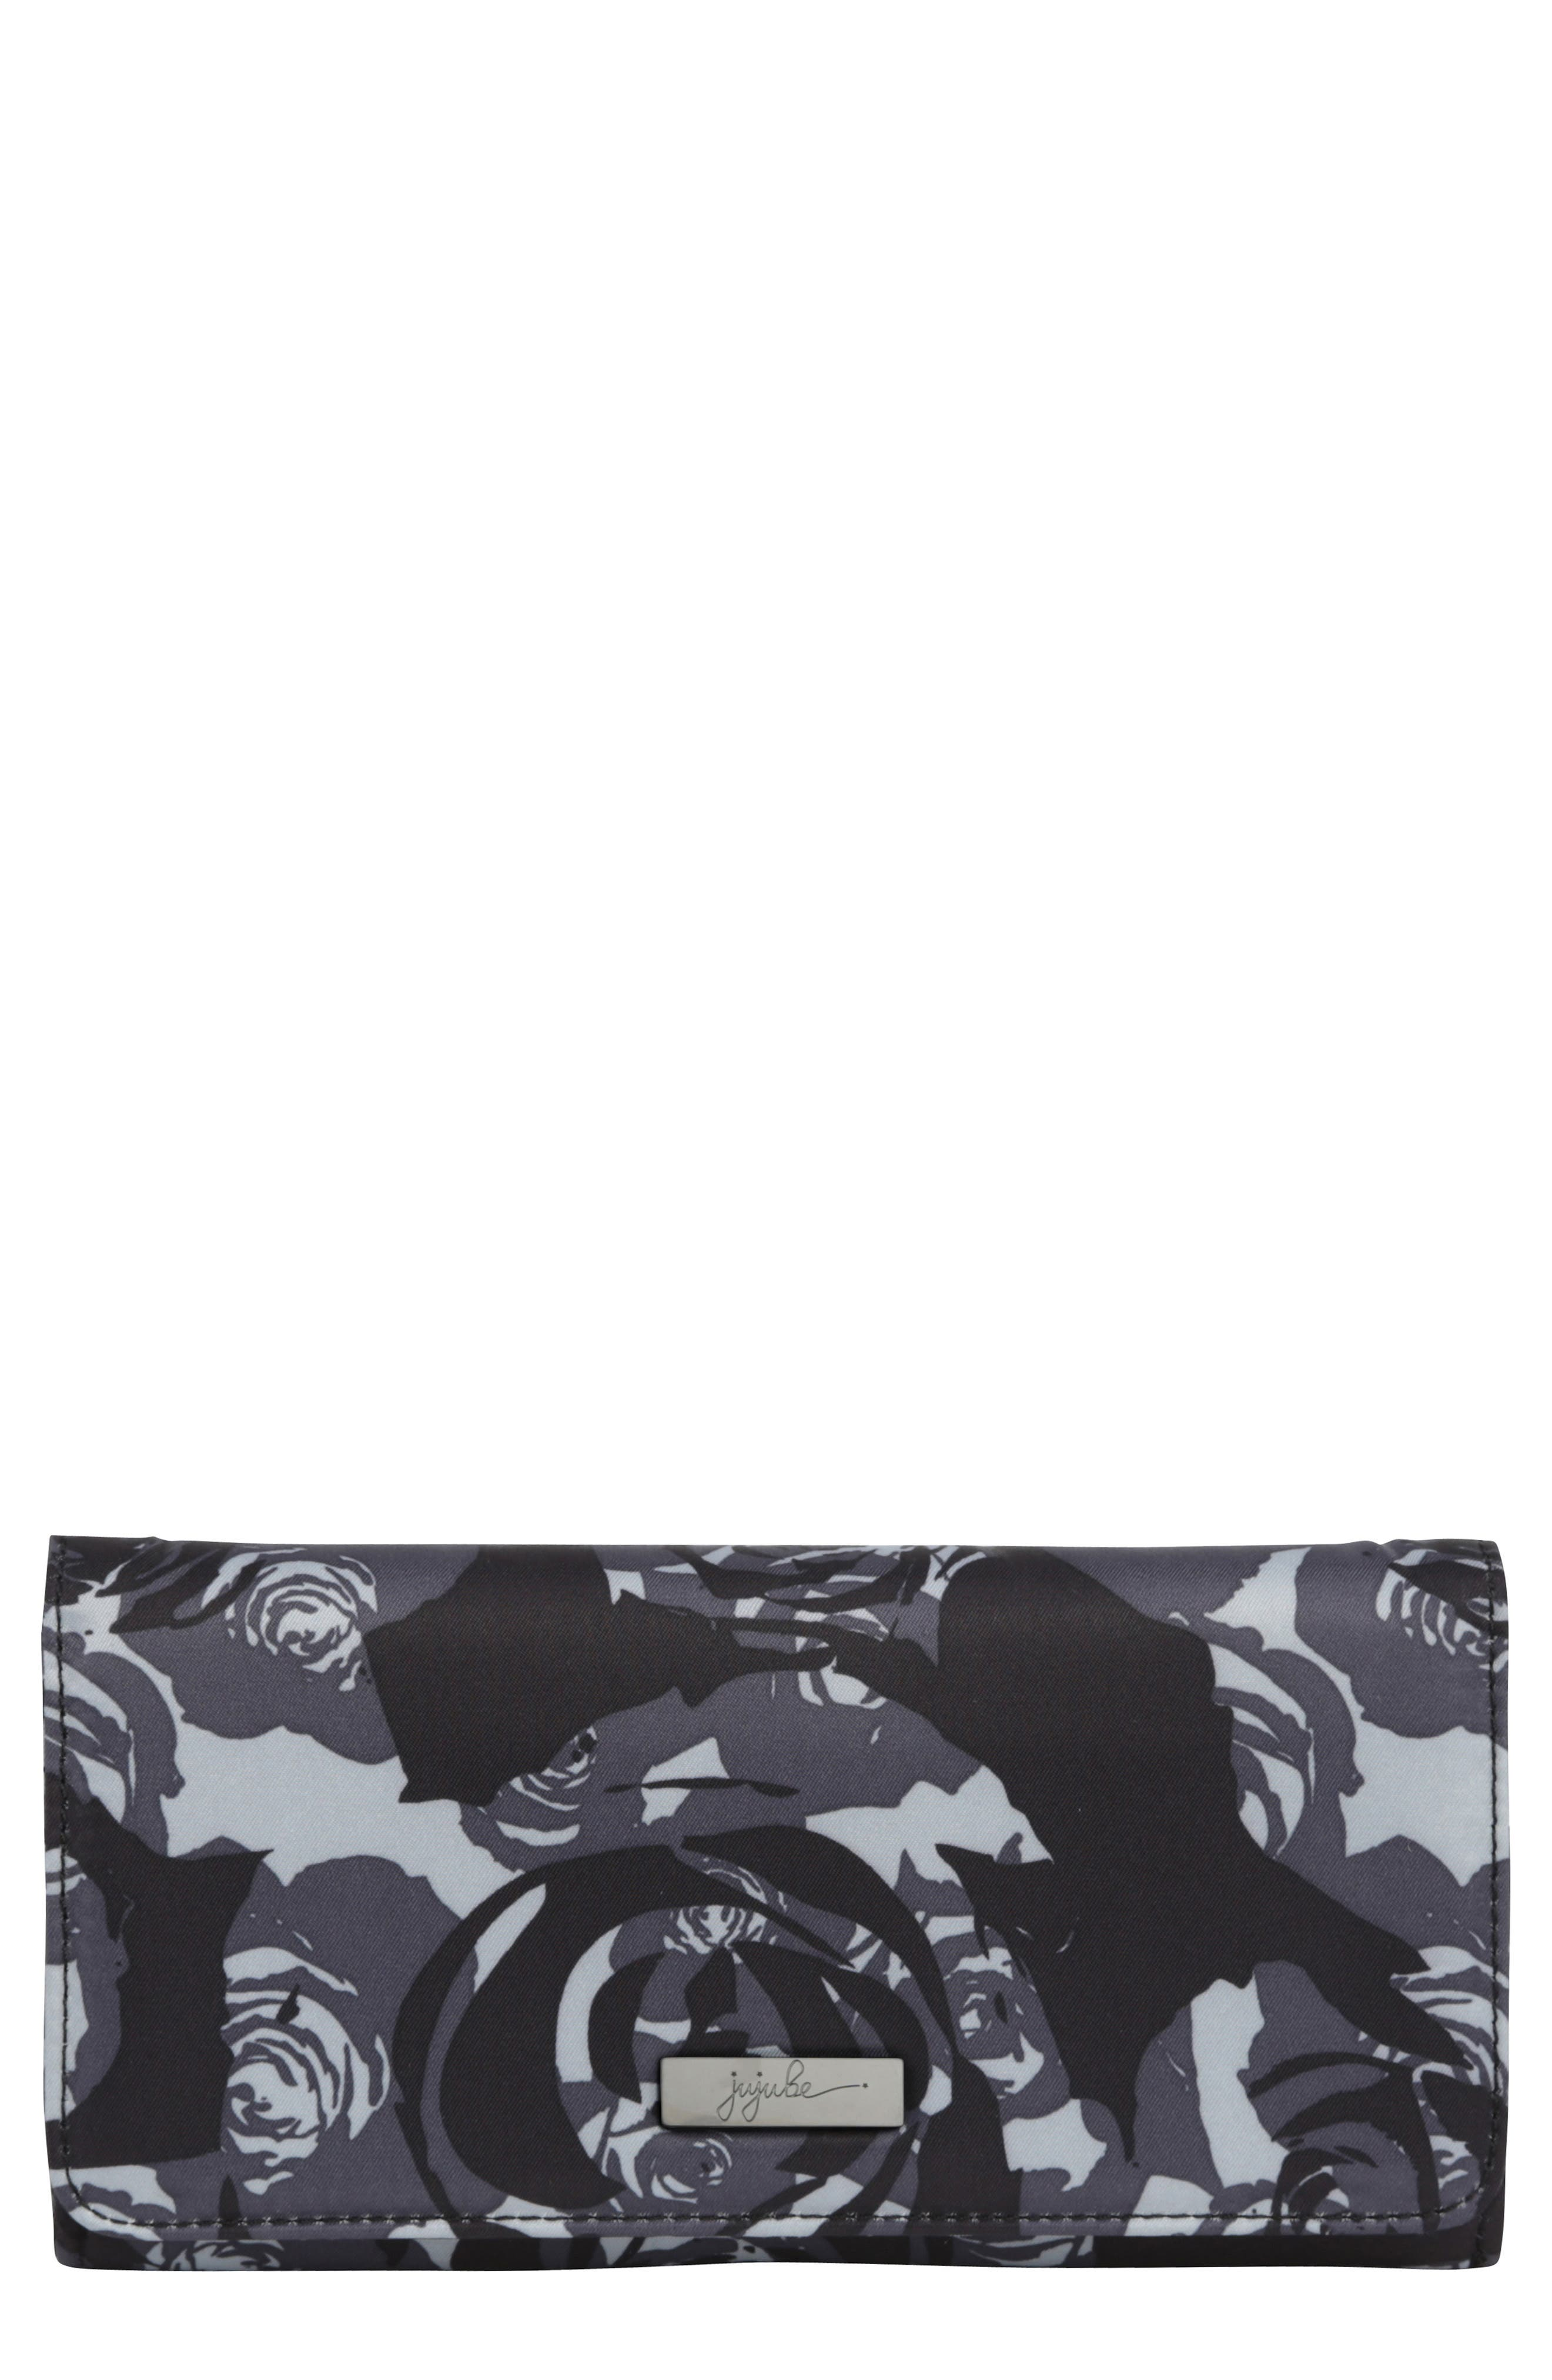 Main Image - Ju-Ju-Be Legacy Be Rich Trifold Clutch Wallet